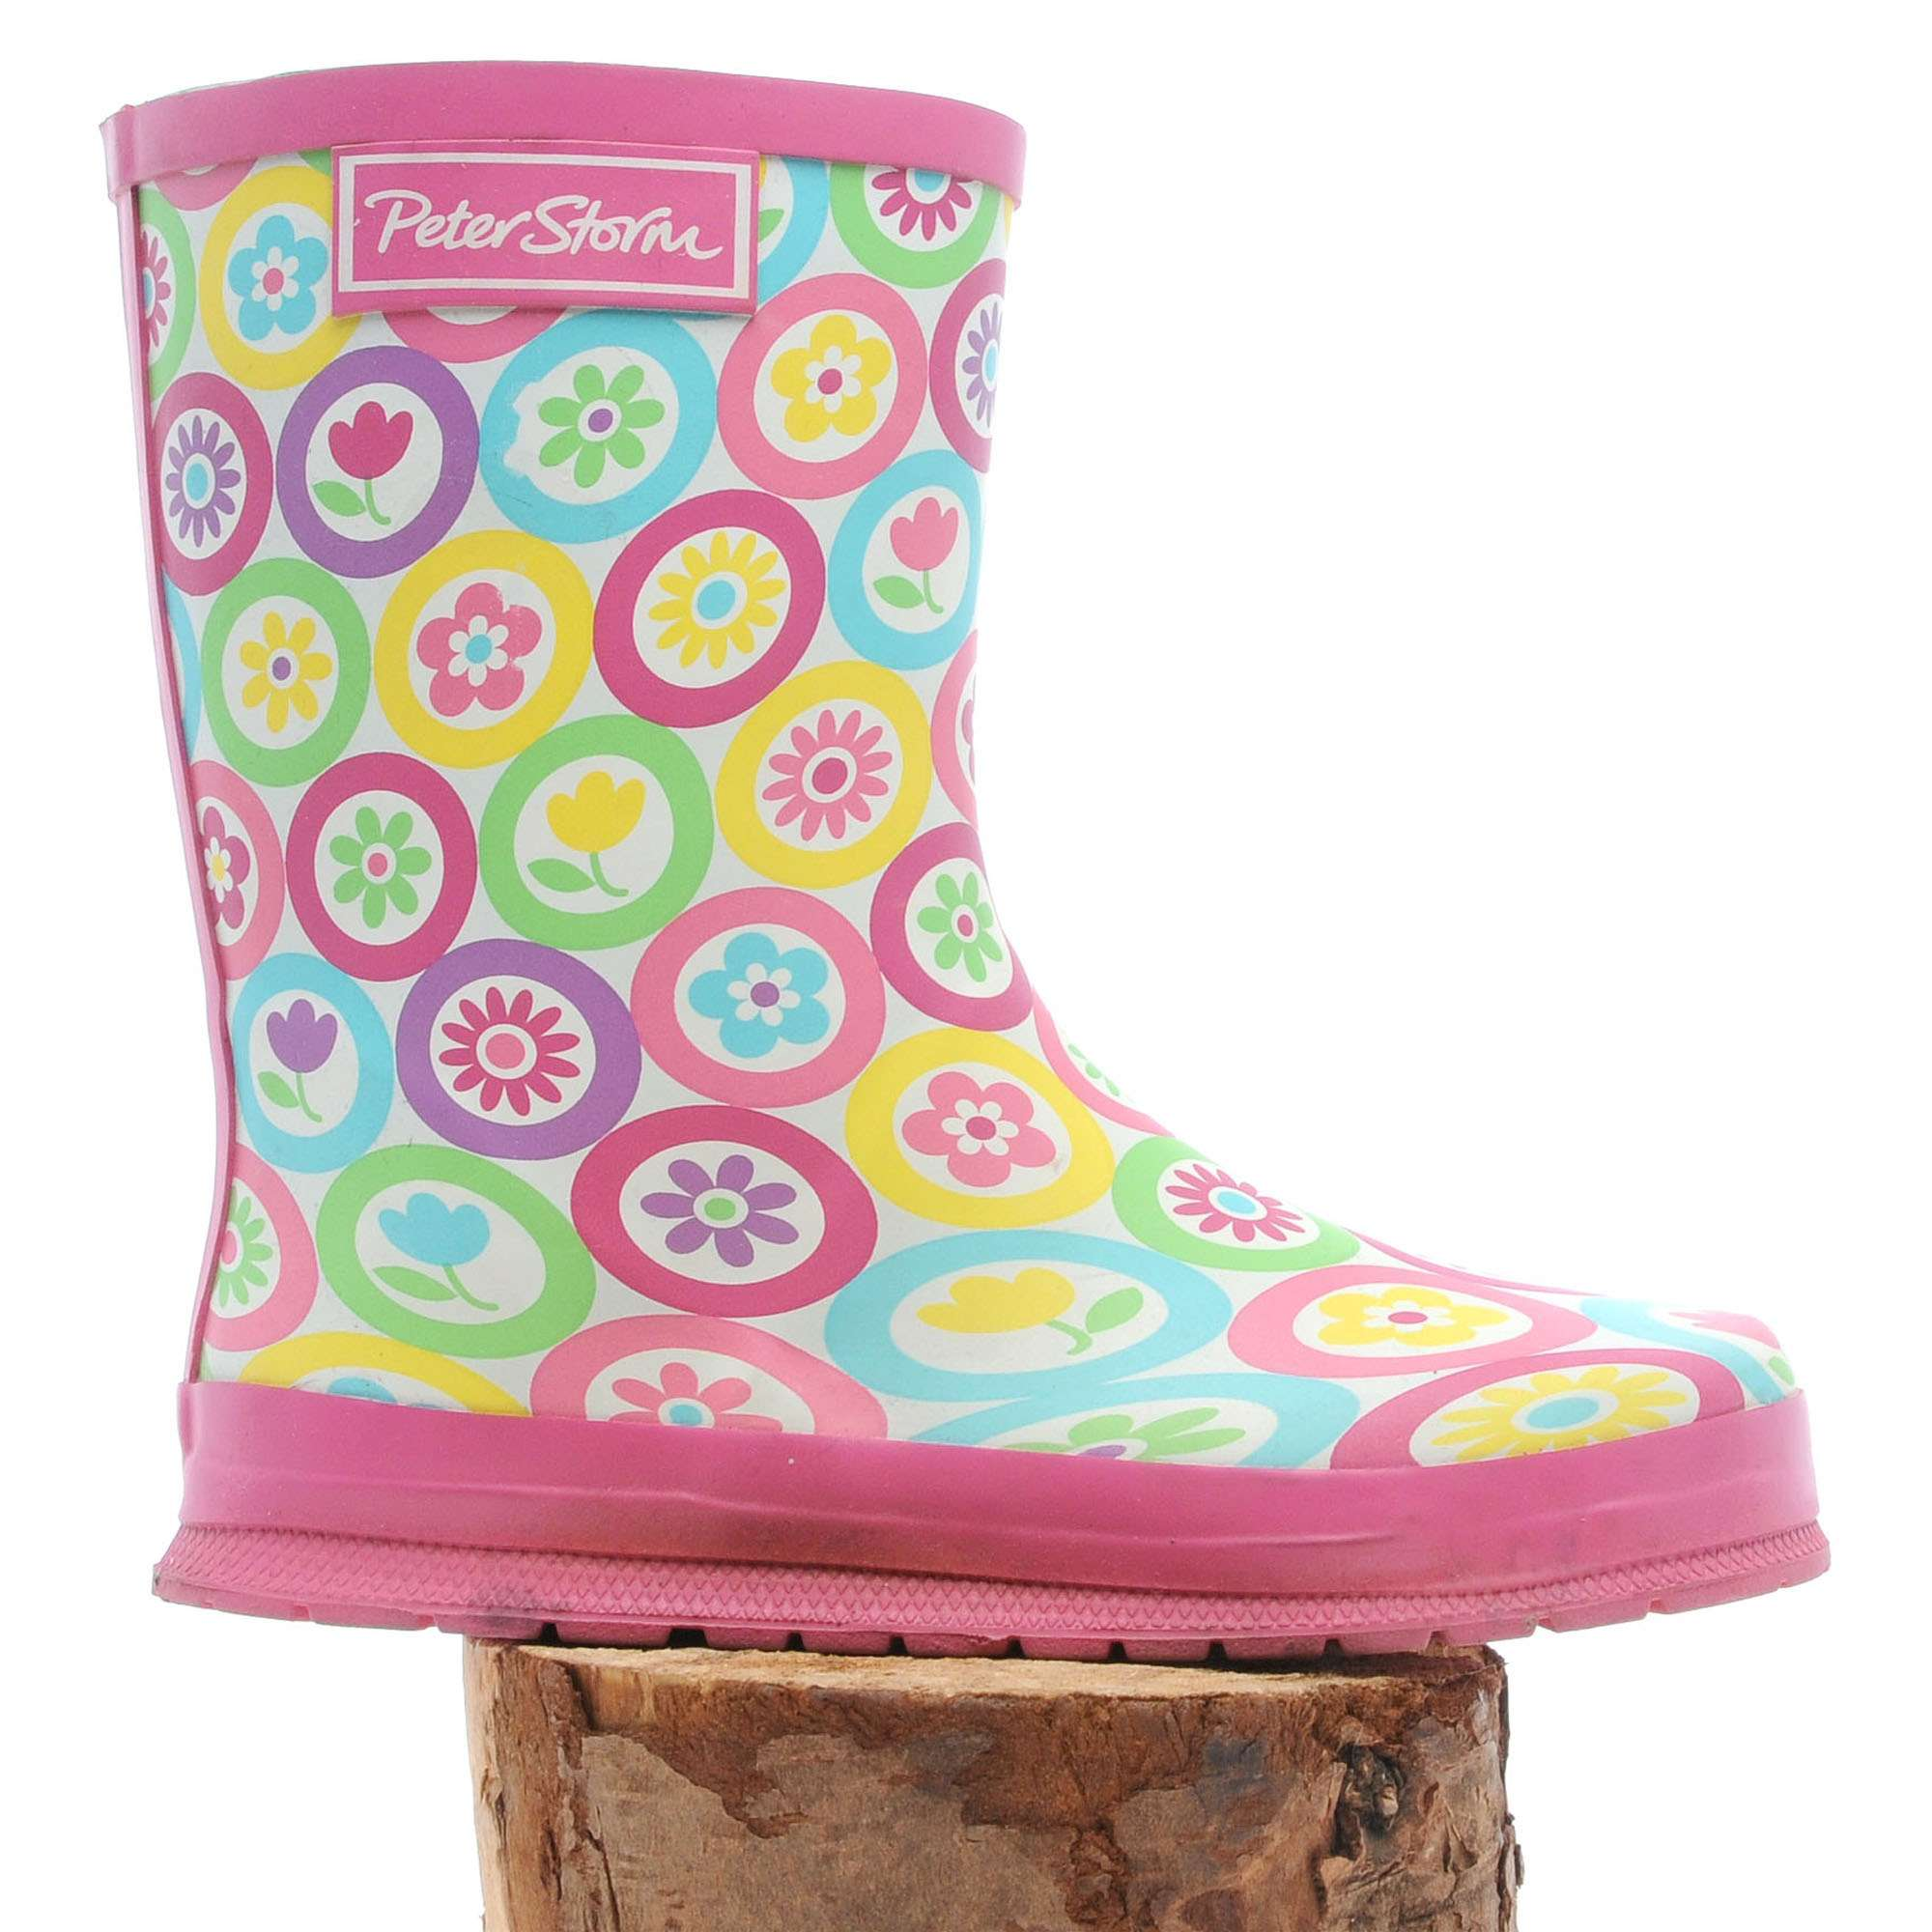 PETER STORM Girls' Floral Wellies